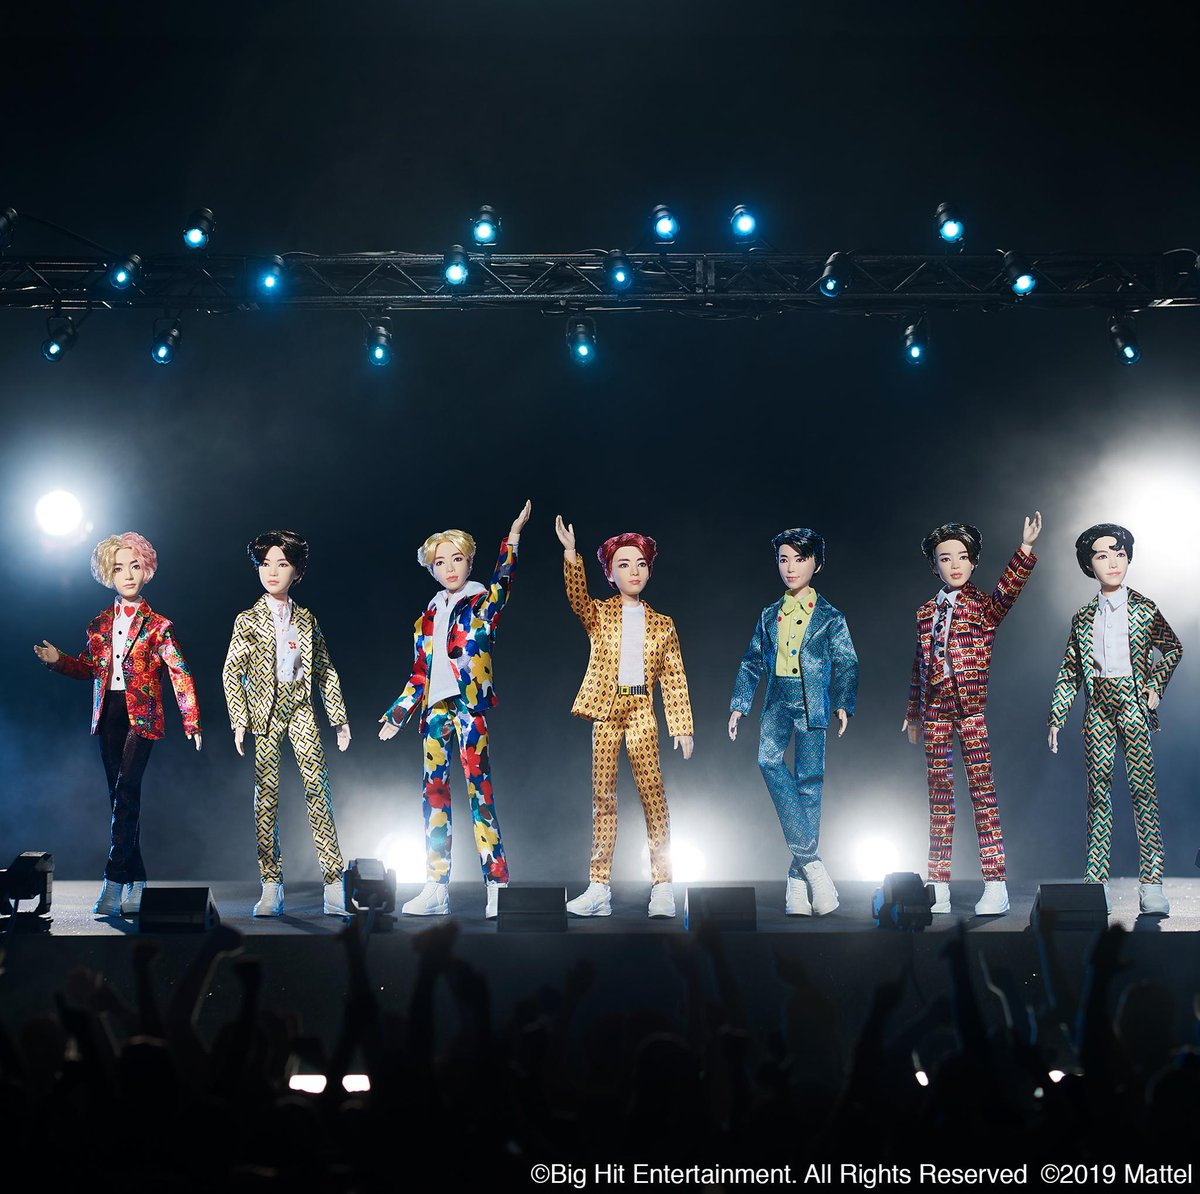 test Twitter Media - MIC Drop, ARMY! 🎤For the first time ever, we're thrilled to show you the line of #BTSxMattel fashion dolls! Take a look at V, SUGA, Jin, Jung Kook, RM, Jimin and j-hope as dolls inspired by the Idol music video! 💜😍#BTSDollsOfficial @BigHitEnt https://t.co/0fd1XpLVFF